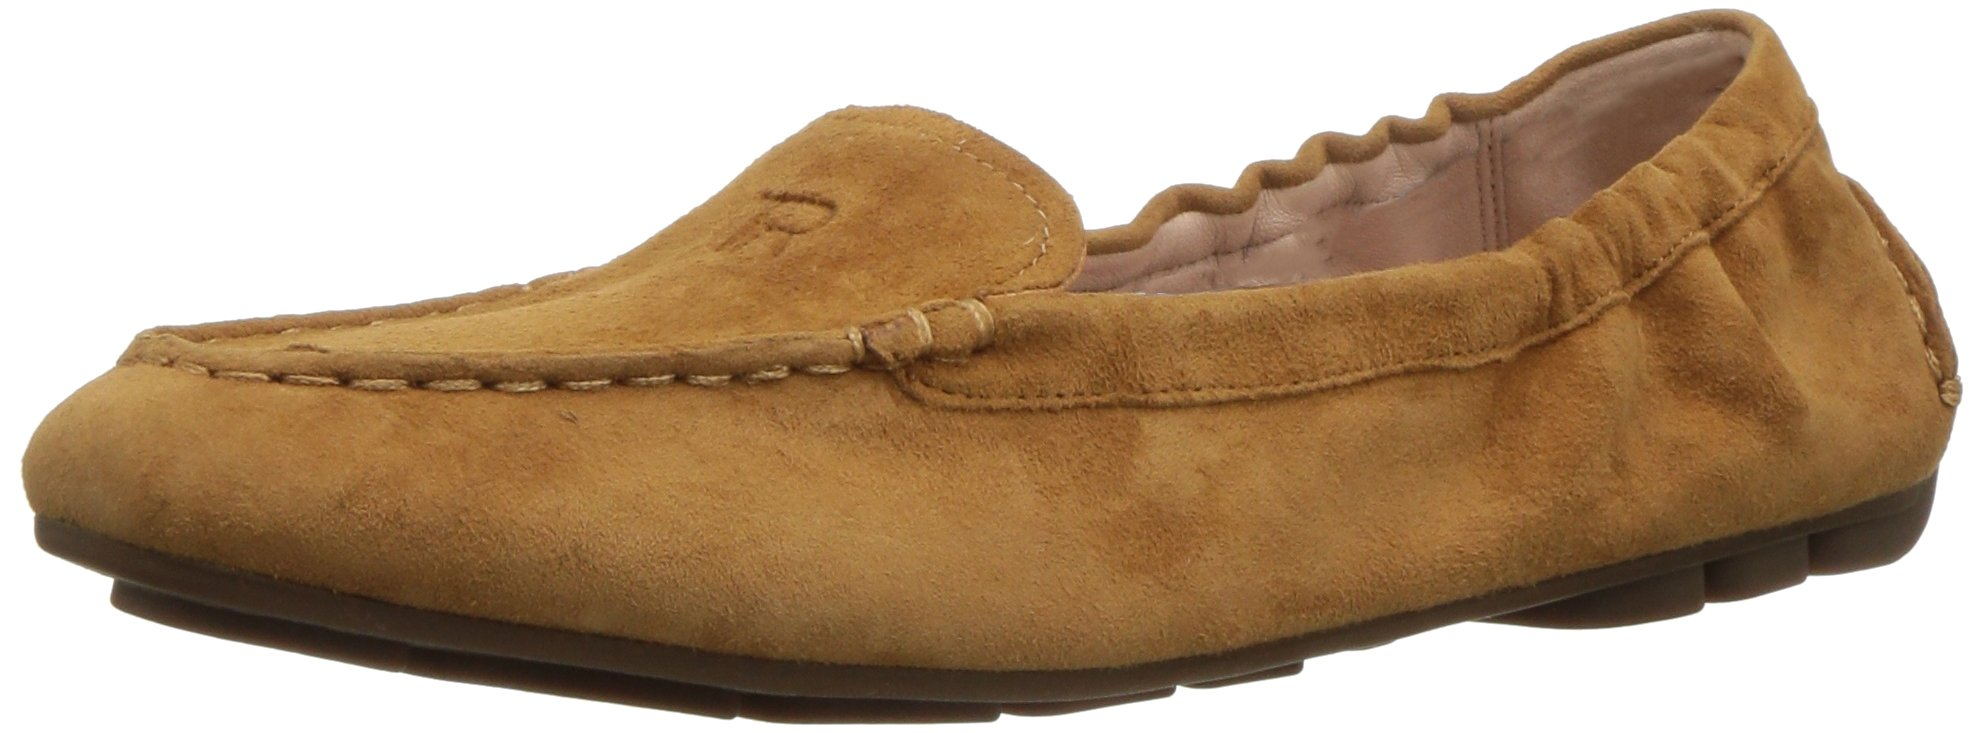 Taryn Rose Women's Kristine Driving Style Loafer by Taryn Rose